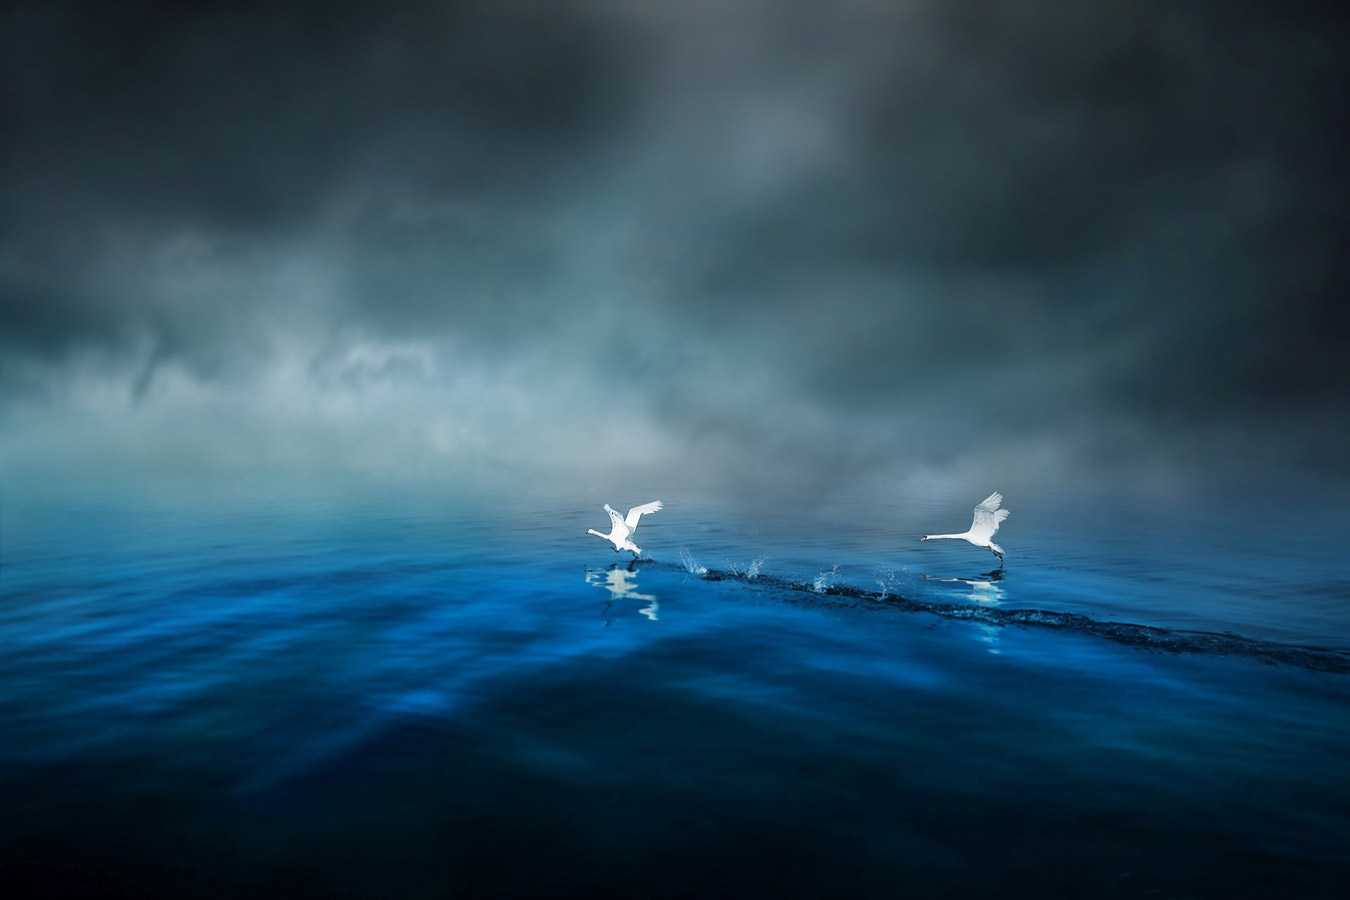 Swans of the Cobalt Blue Lake, © Miskovic Josip, Italy, 2nd place, TransNatura International Nature Photo Contest